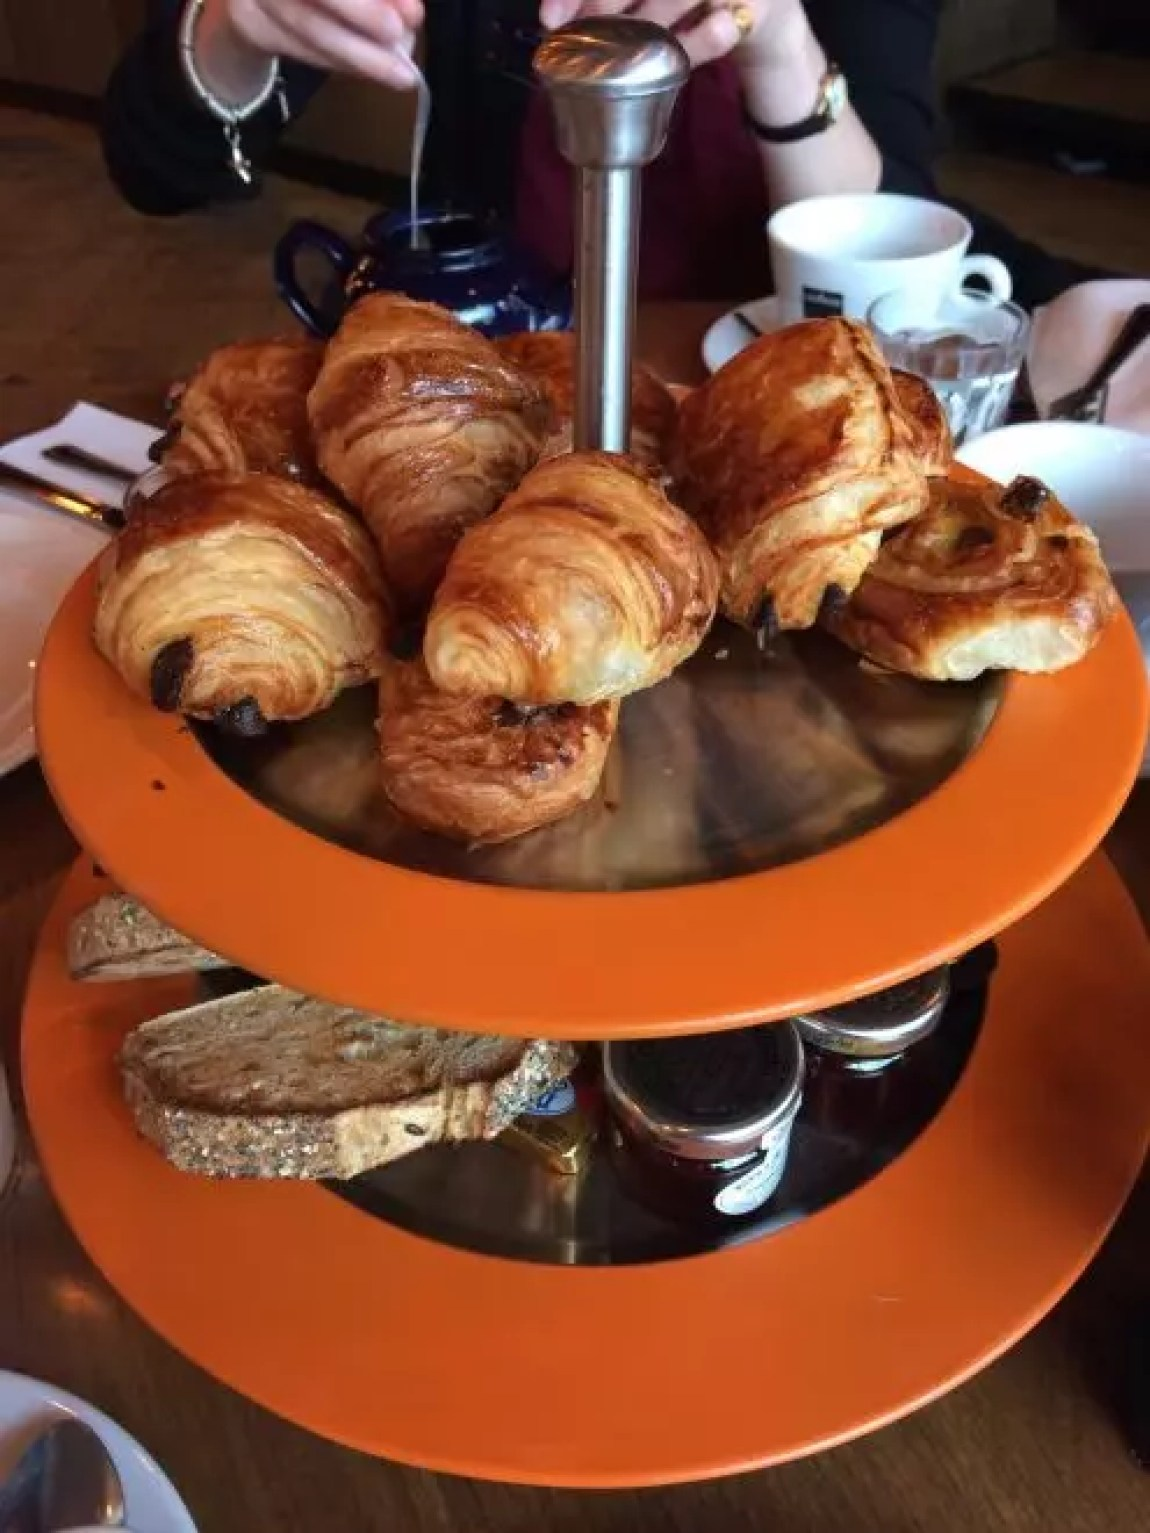 unlimited pastries